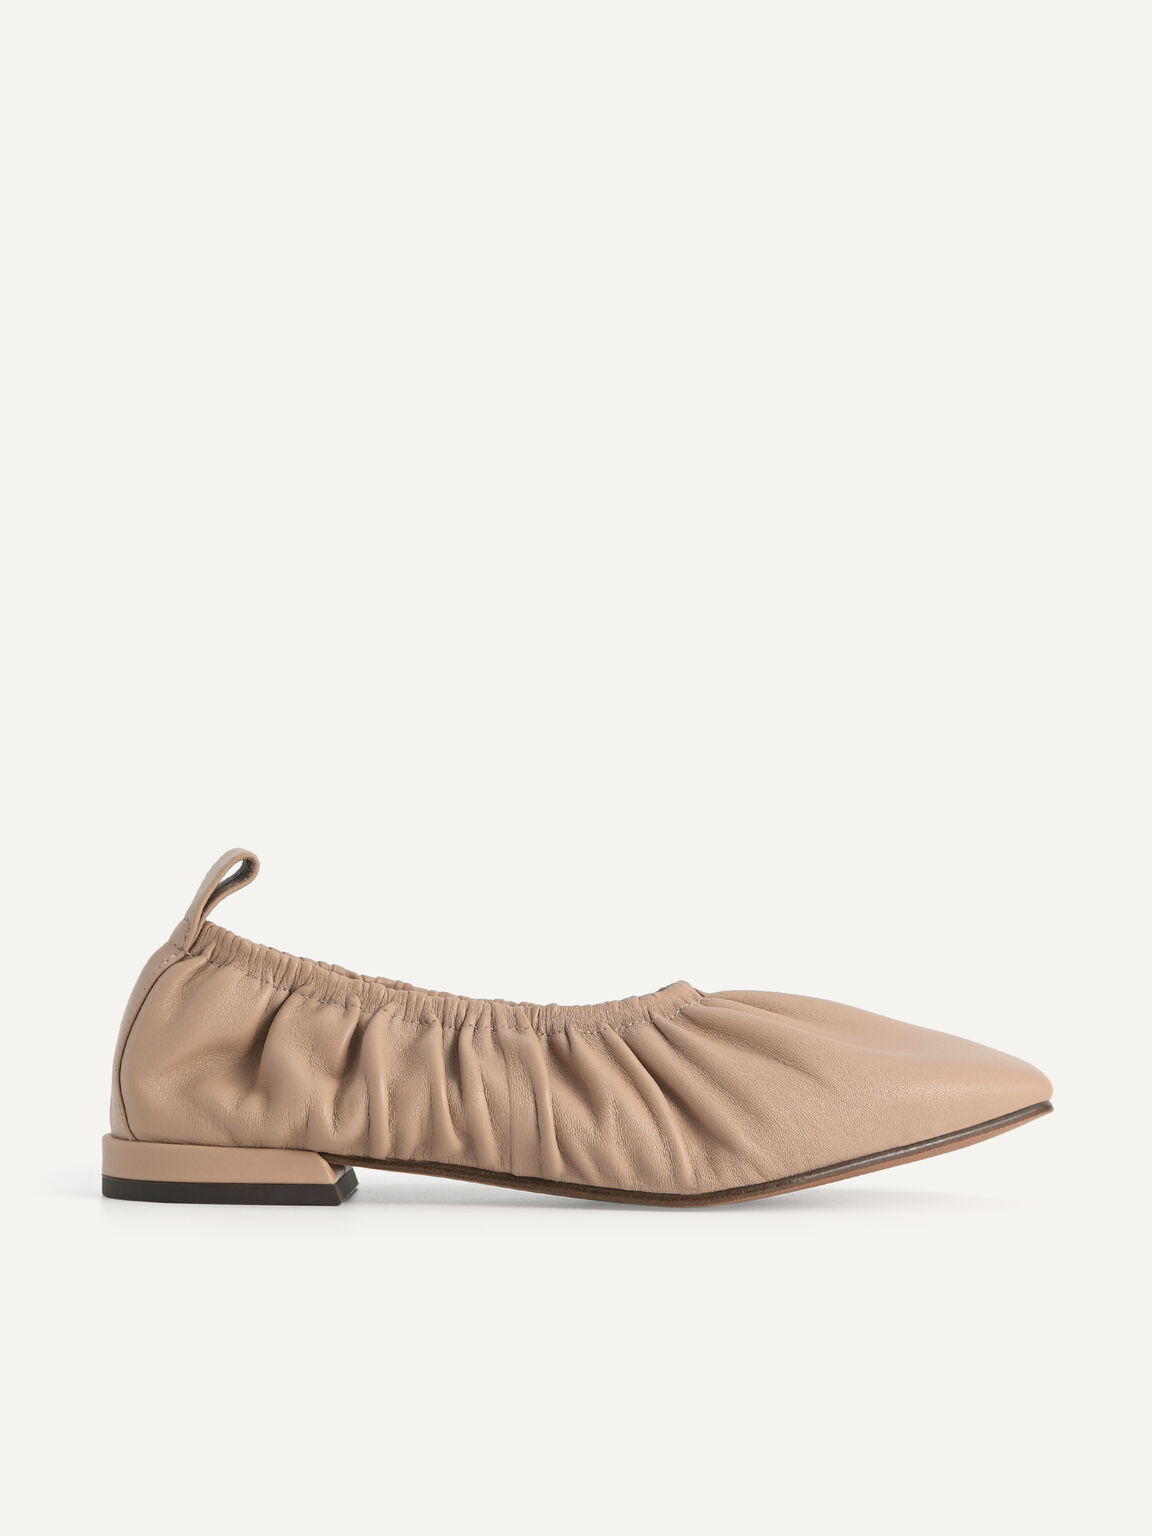 Ruched Leather Flats, Taupe, hi-res